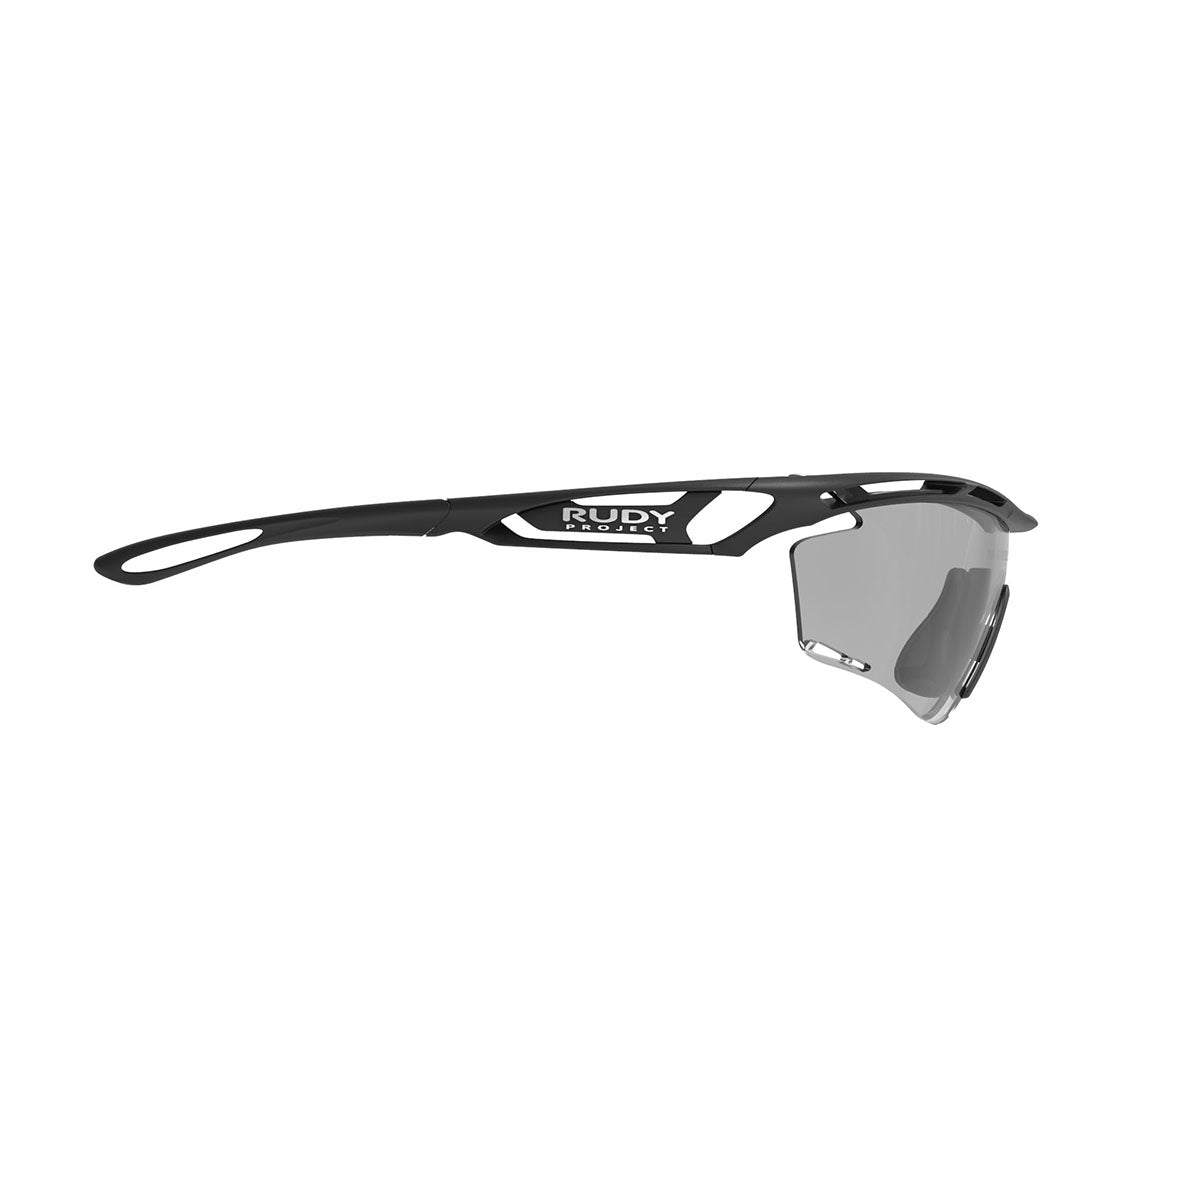 Rudy Project - Tralyx - frame color: Matte Black - lens color: ImpactX-2 Photochromic Clear to Black - photo angle: Side Variant Hover Image